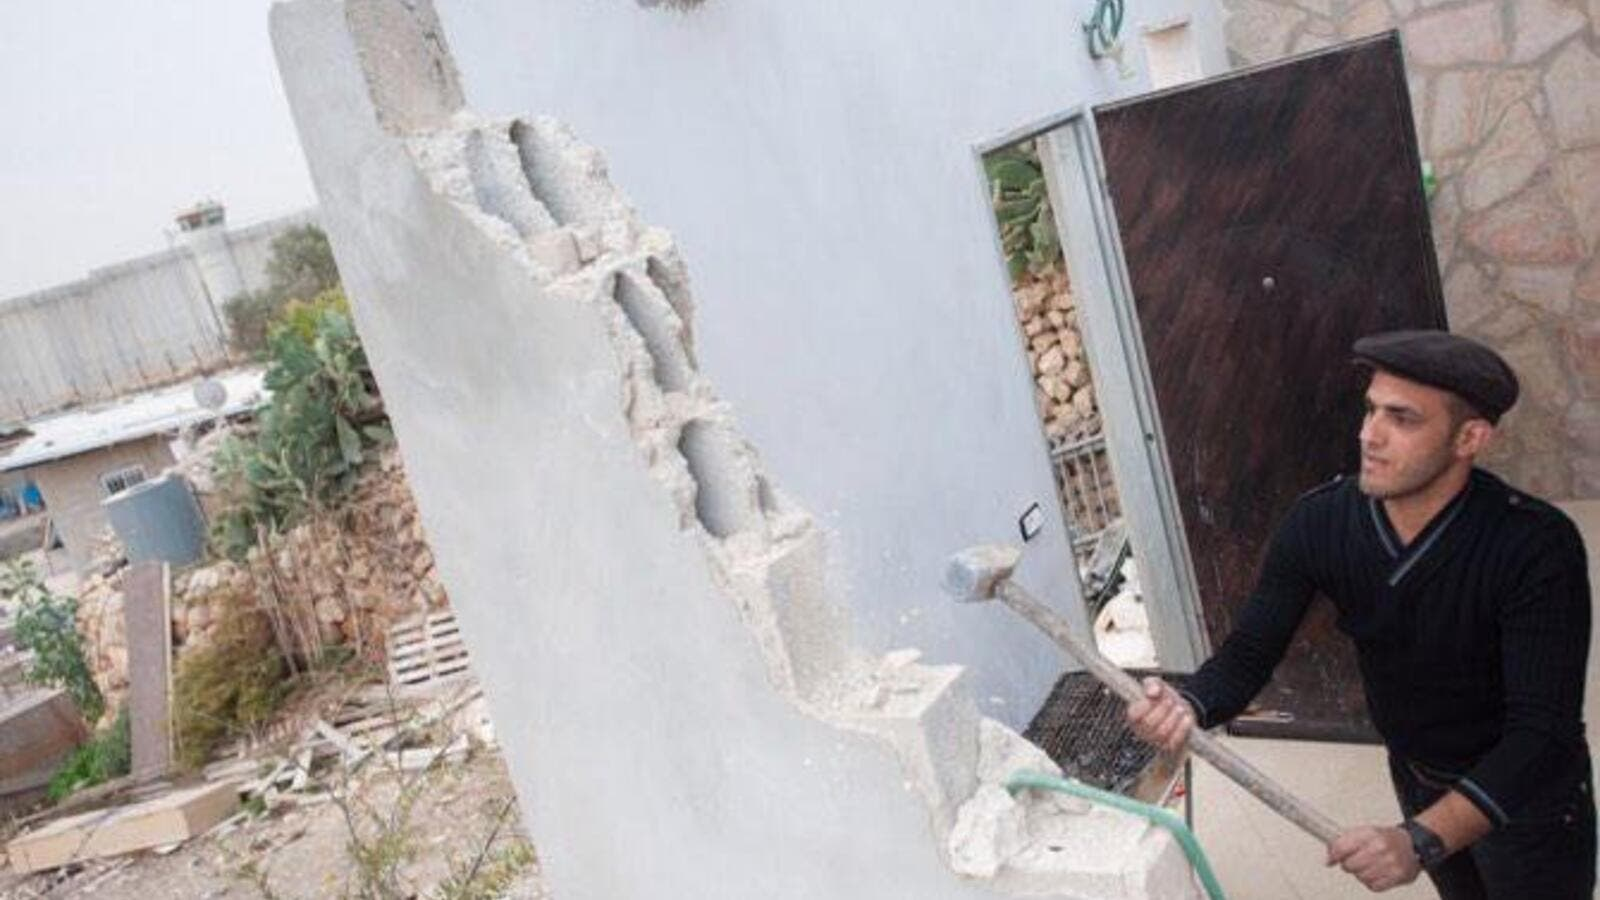 Palestinians Demolish Their own Homes (Twitter)